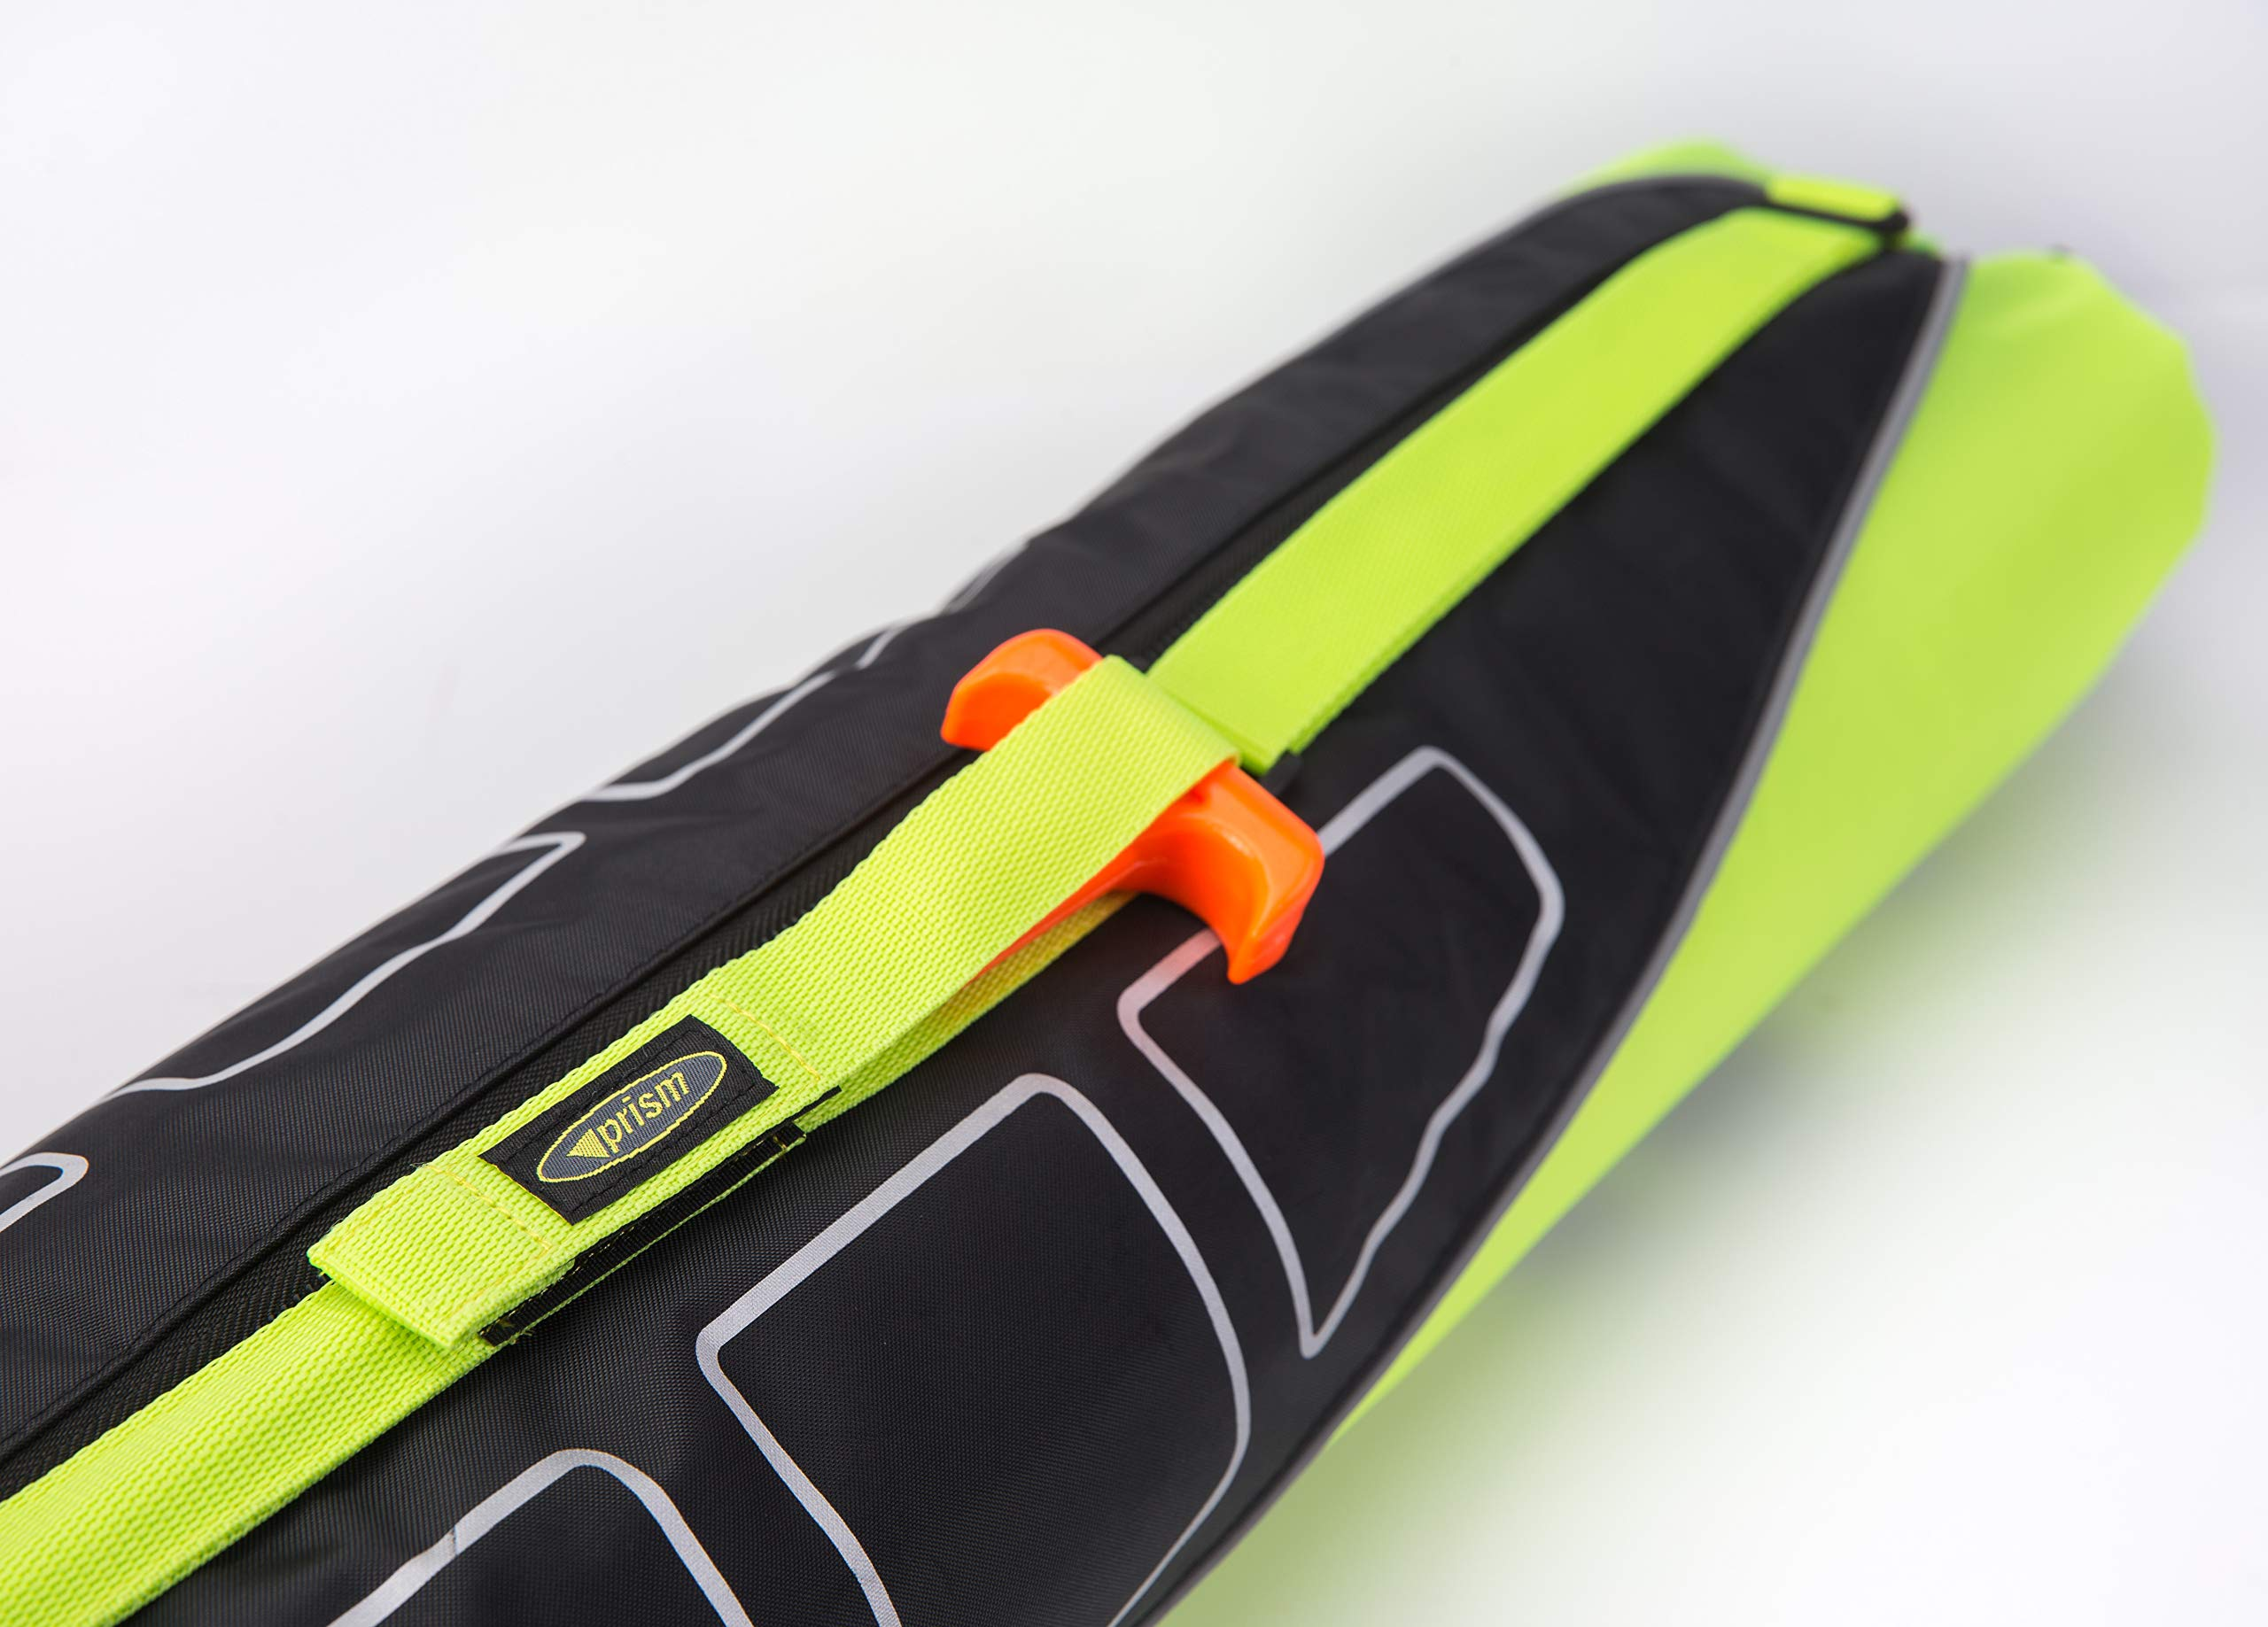 Prism Mentor 3.5m Water-relaunchable Three-line Power Kite Ready to Fly with Control bar, Ground Stake and Quick Release Safety Leash by Prism Kite Technology (Image #6)